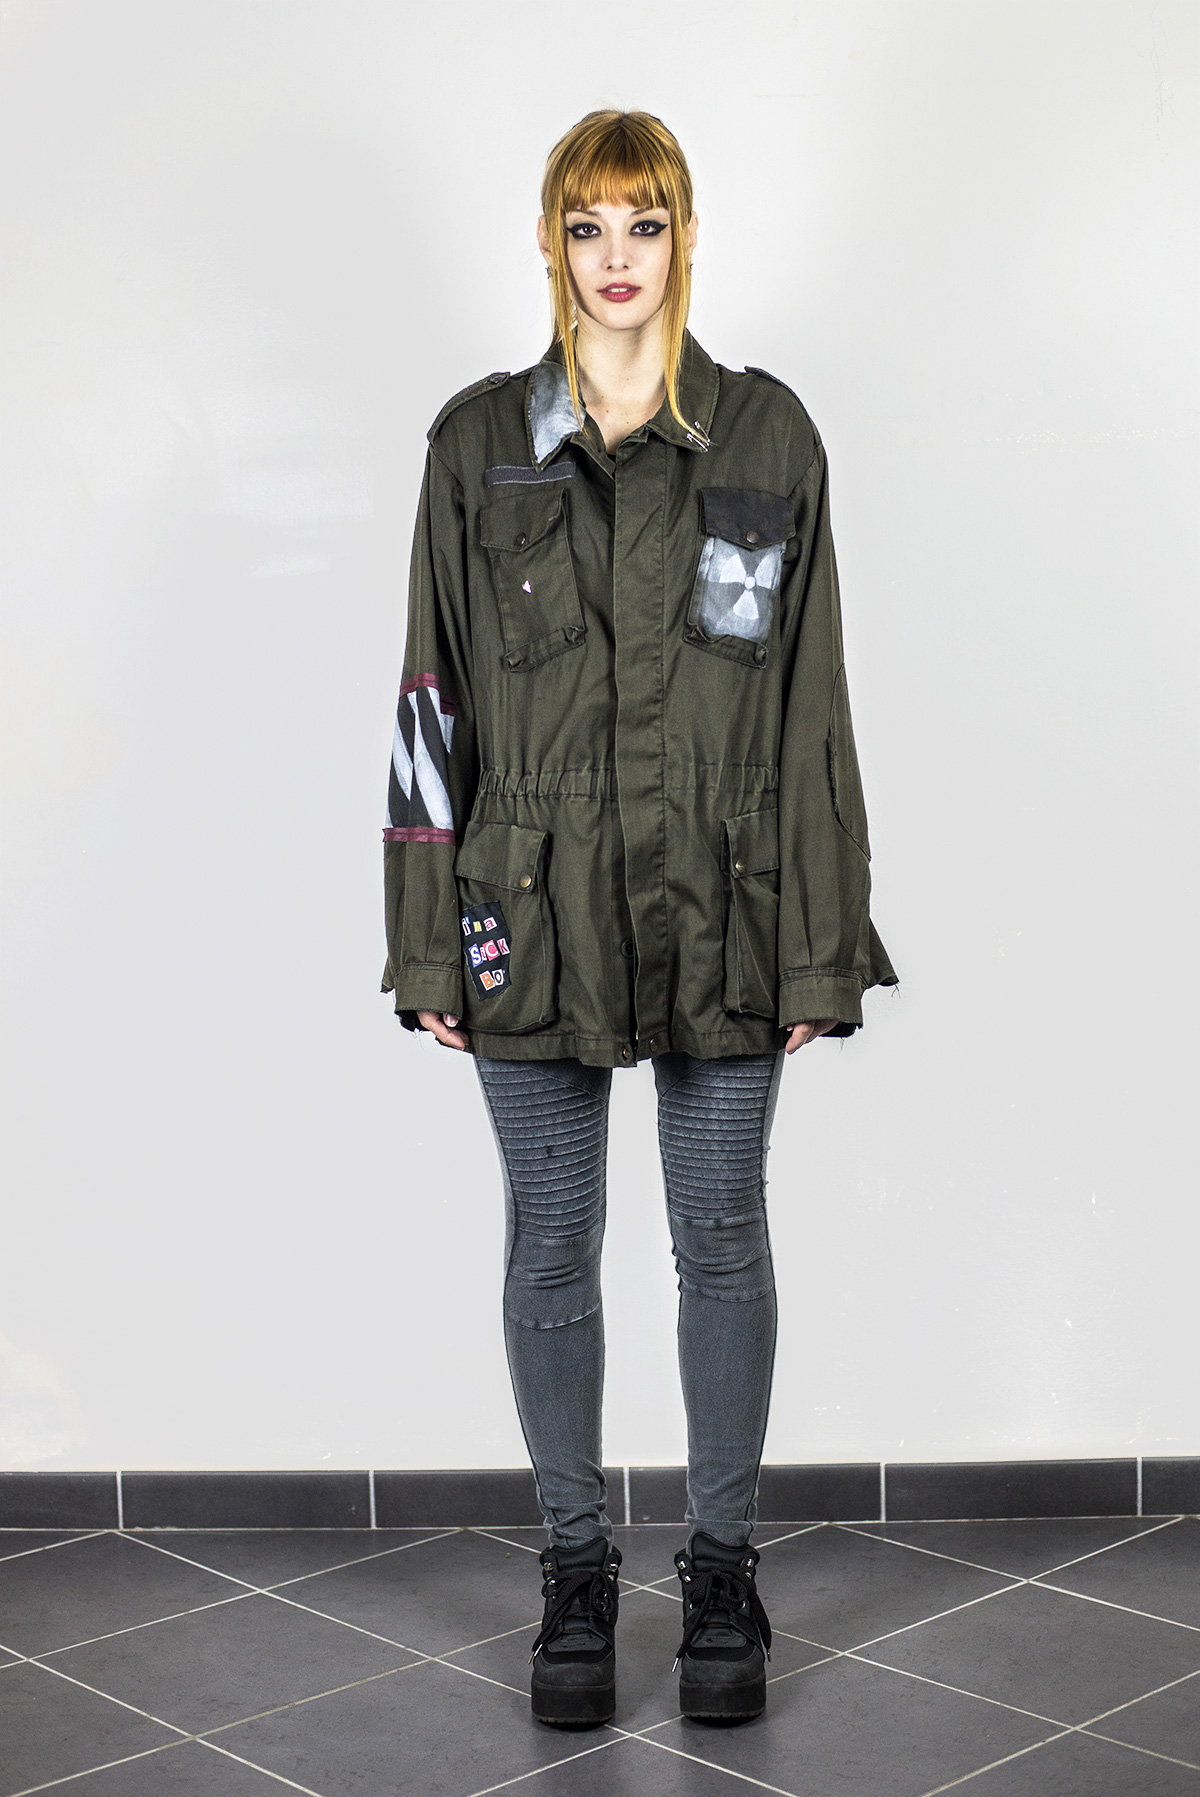 rebelsmarket_fulmineo_remade_military_jacket_jackets_3.jpg